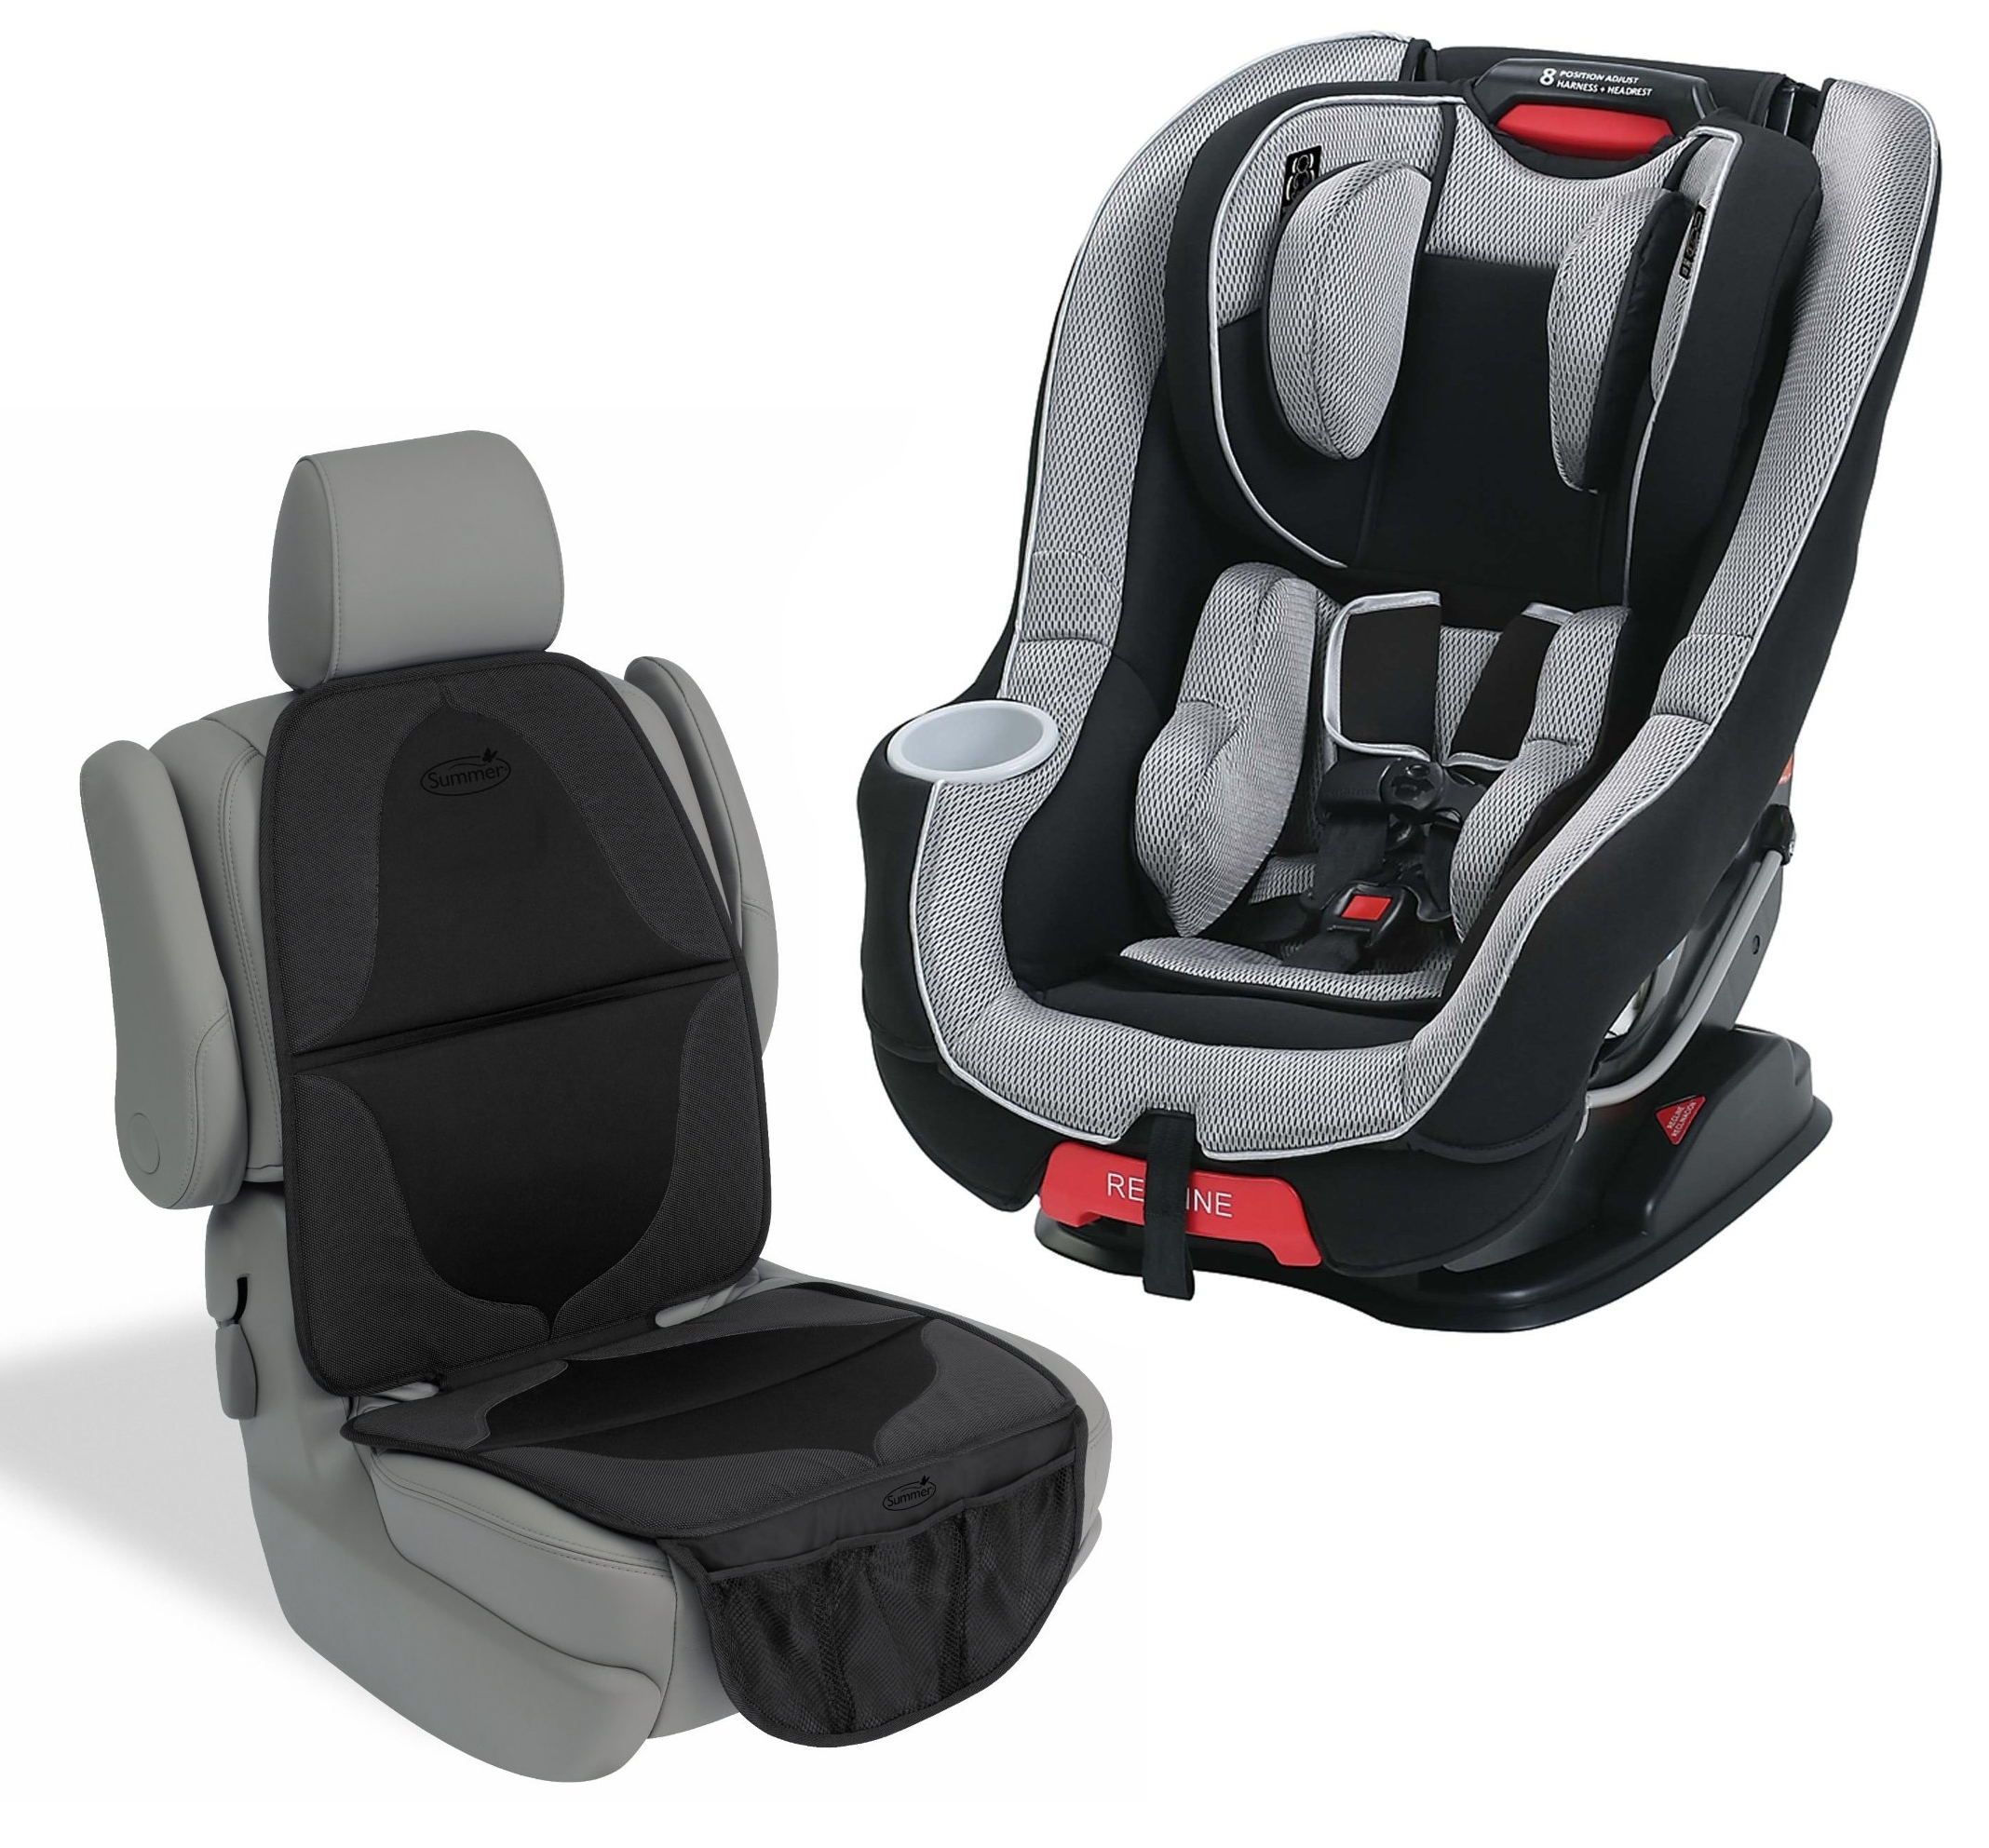 Graco Size4Me 65 Convertible Featuring Rapid Remove Car Seat with Seat Mat, Matrix